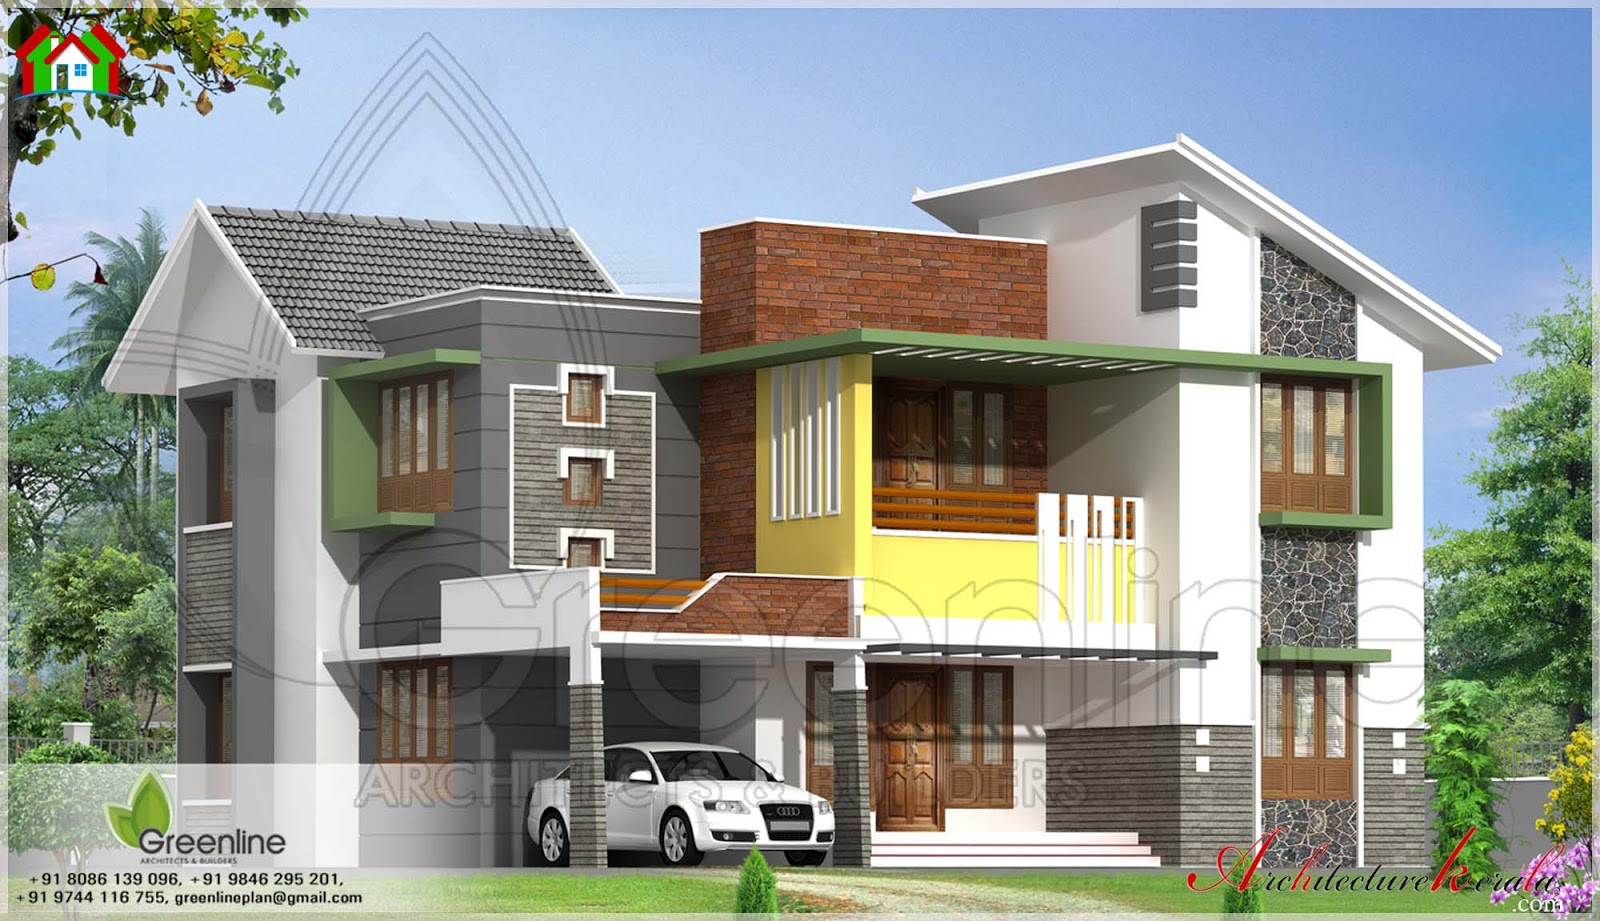 Modern style house elevation architecture kerala for Different elevations of house